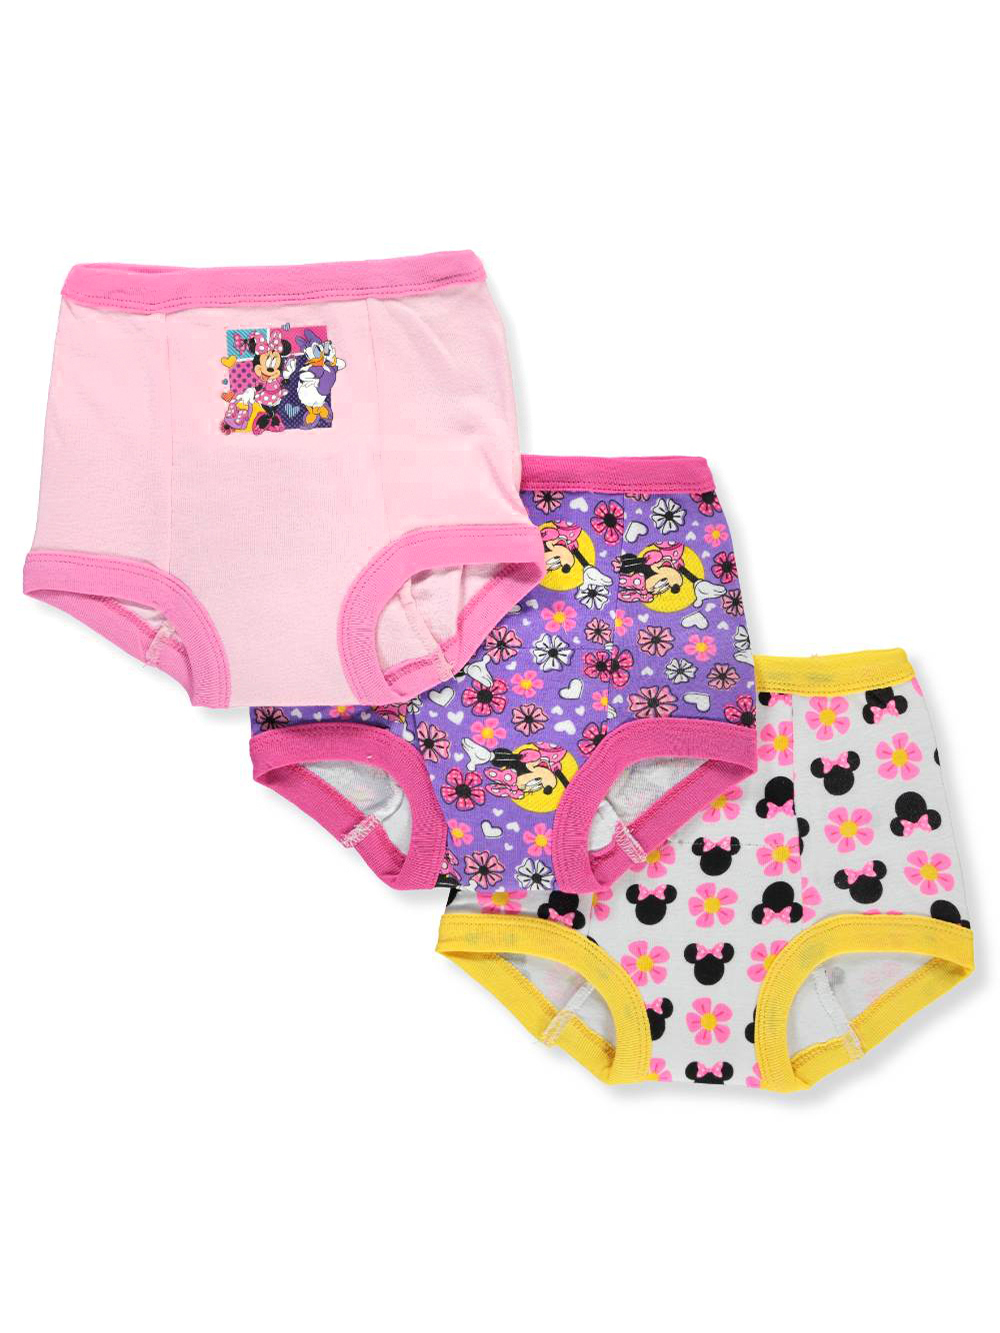 Girls Assorted Underwear